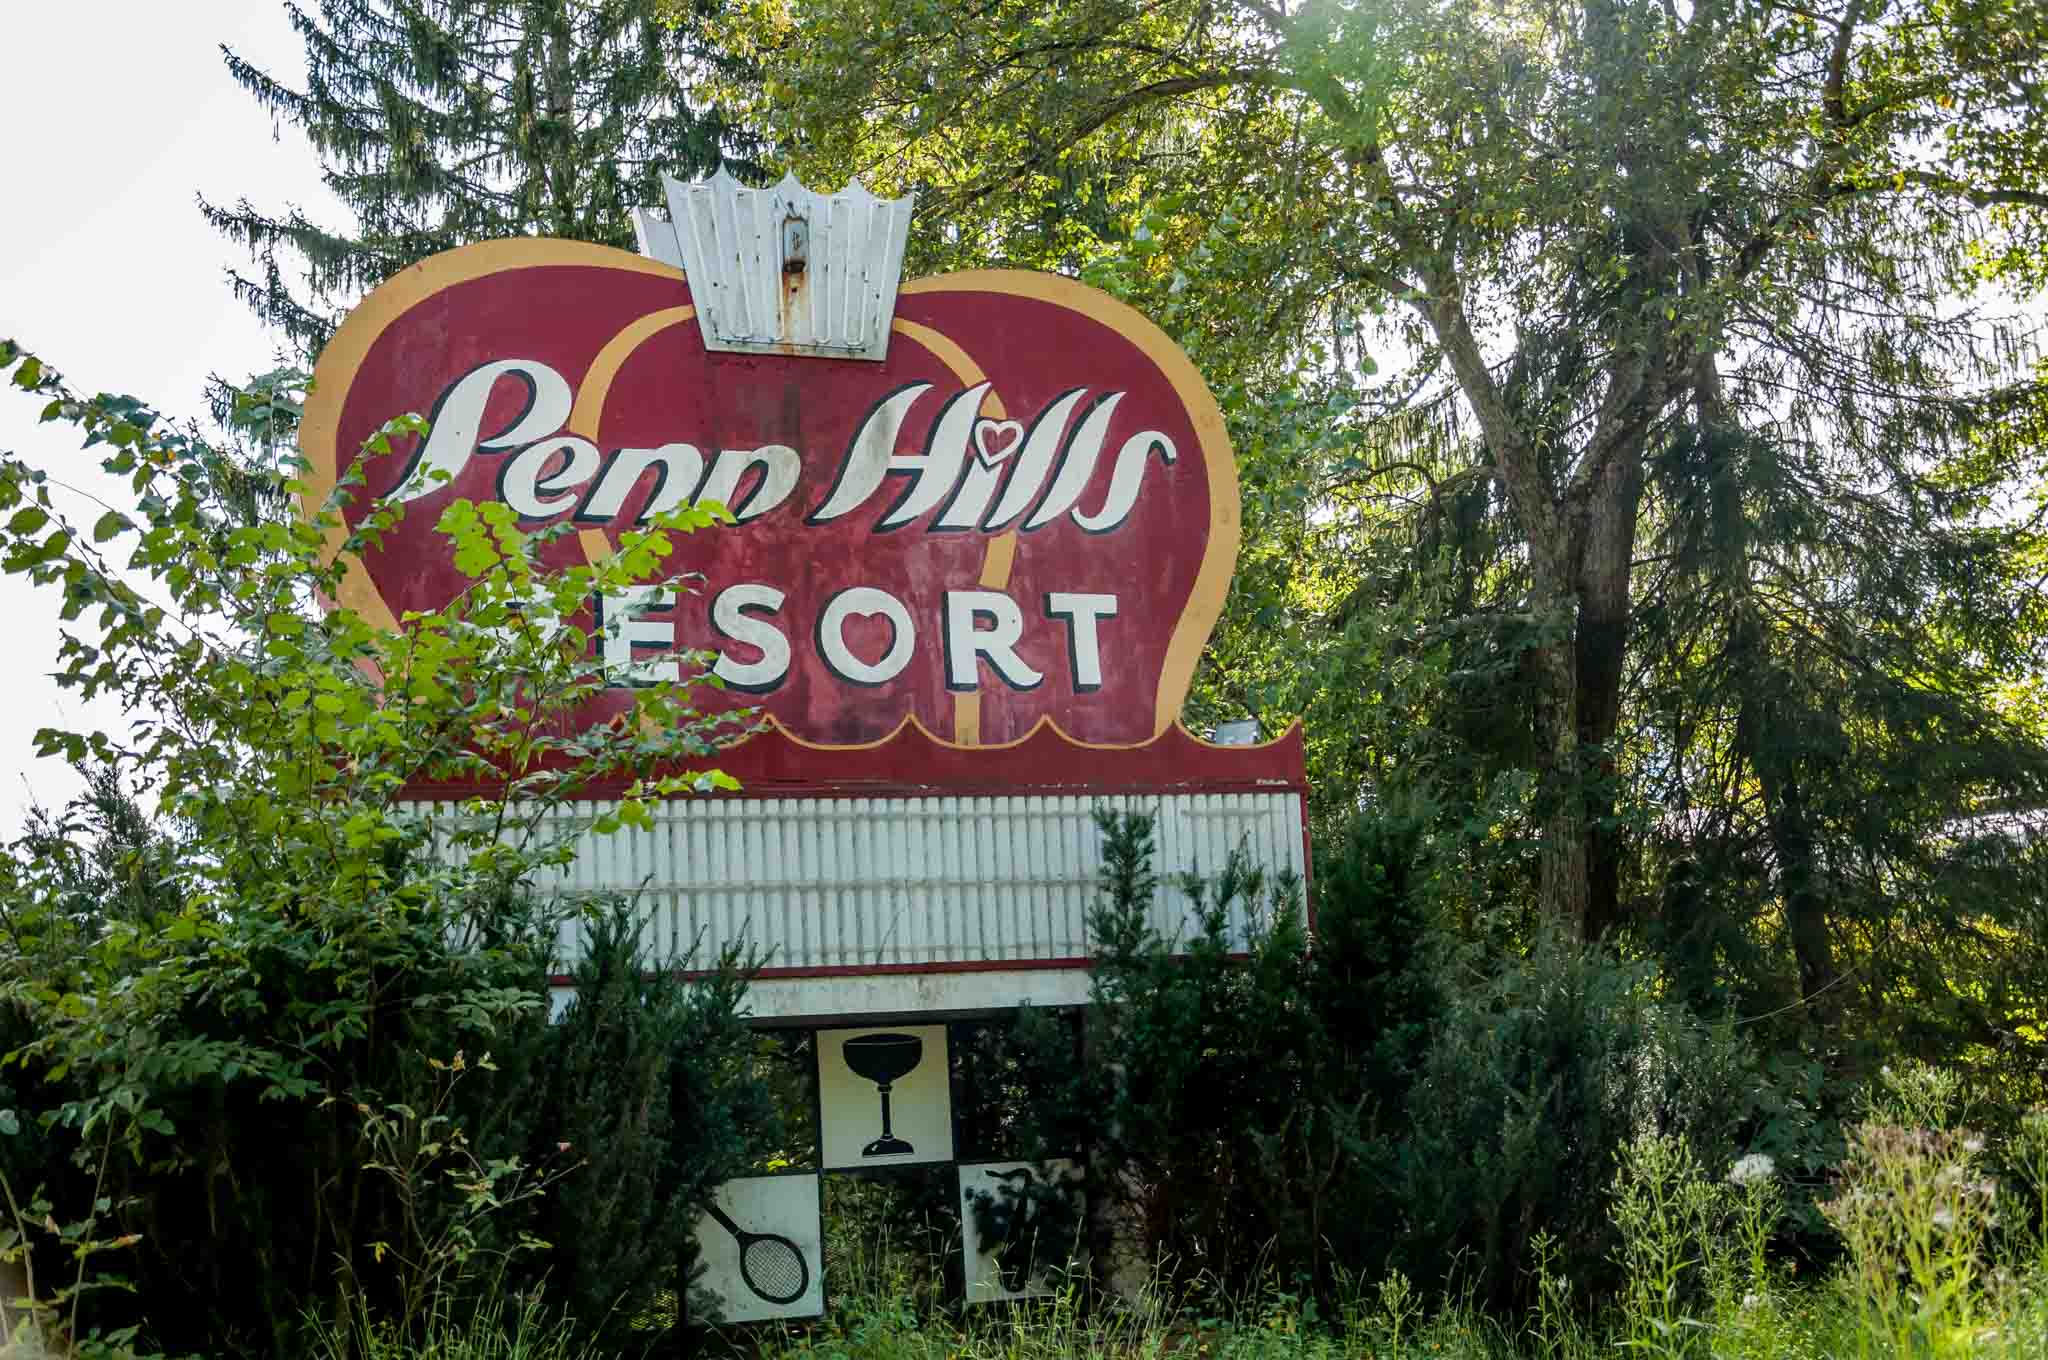 Sign for the abandoned Penn Hills Resort in the Poconos